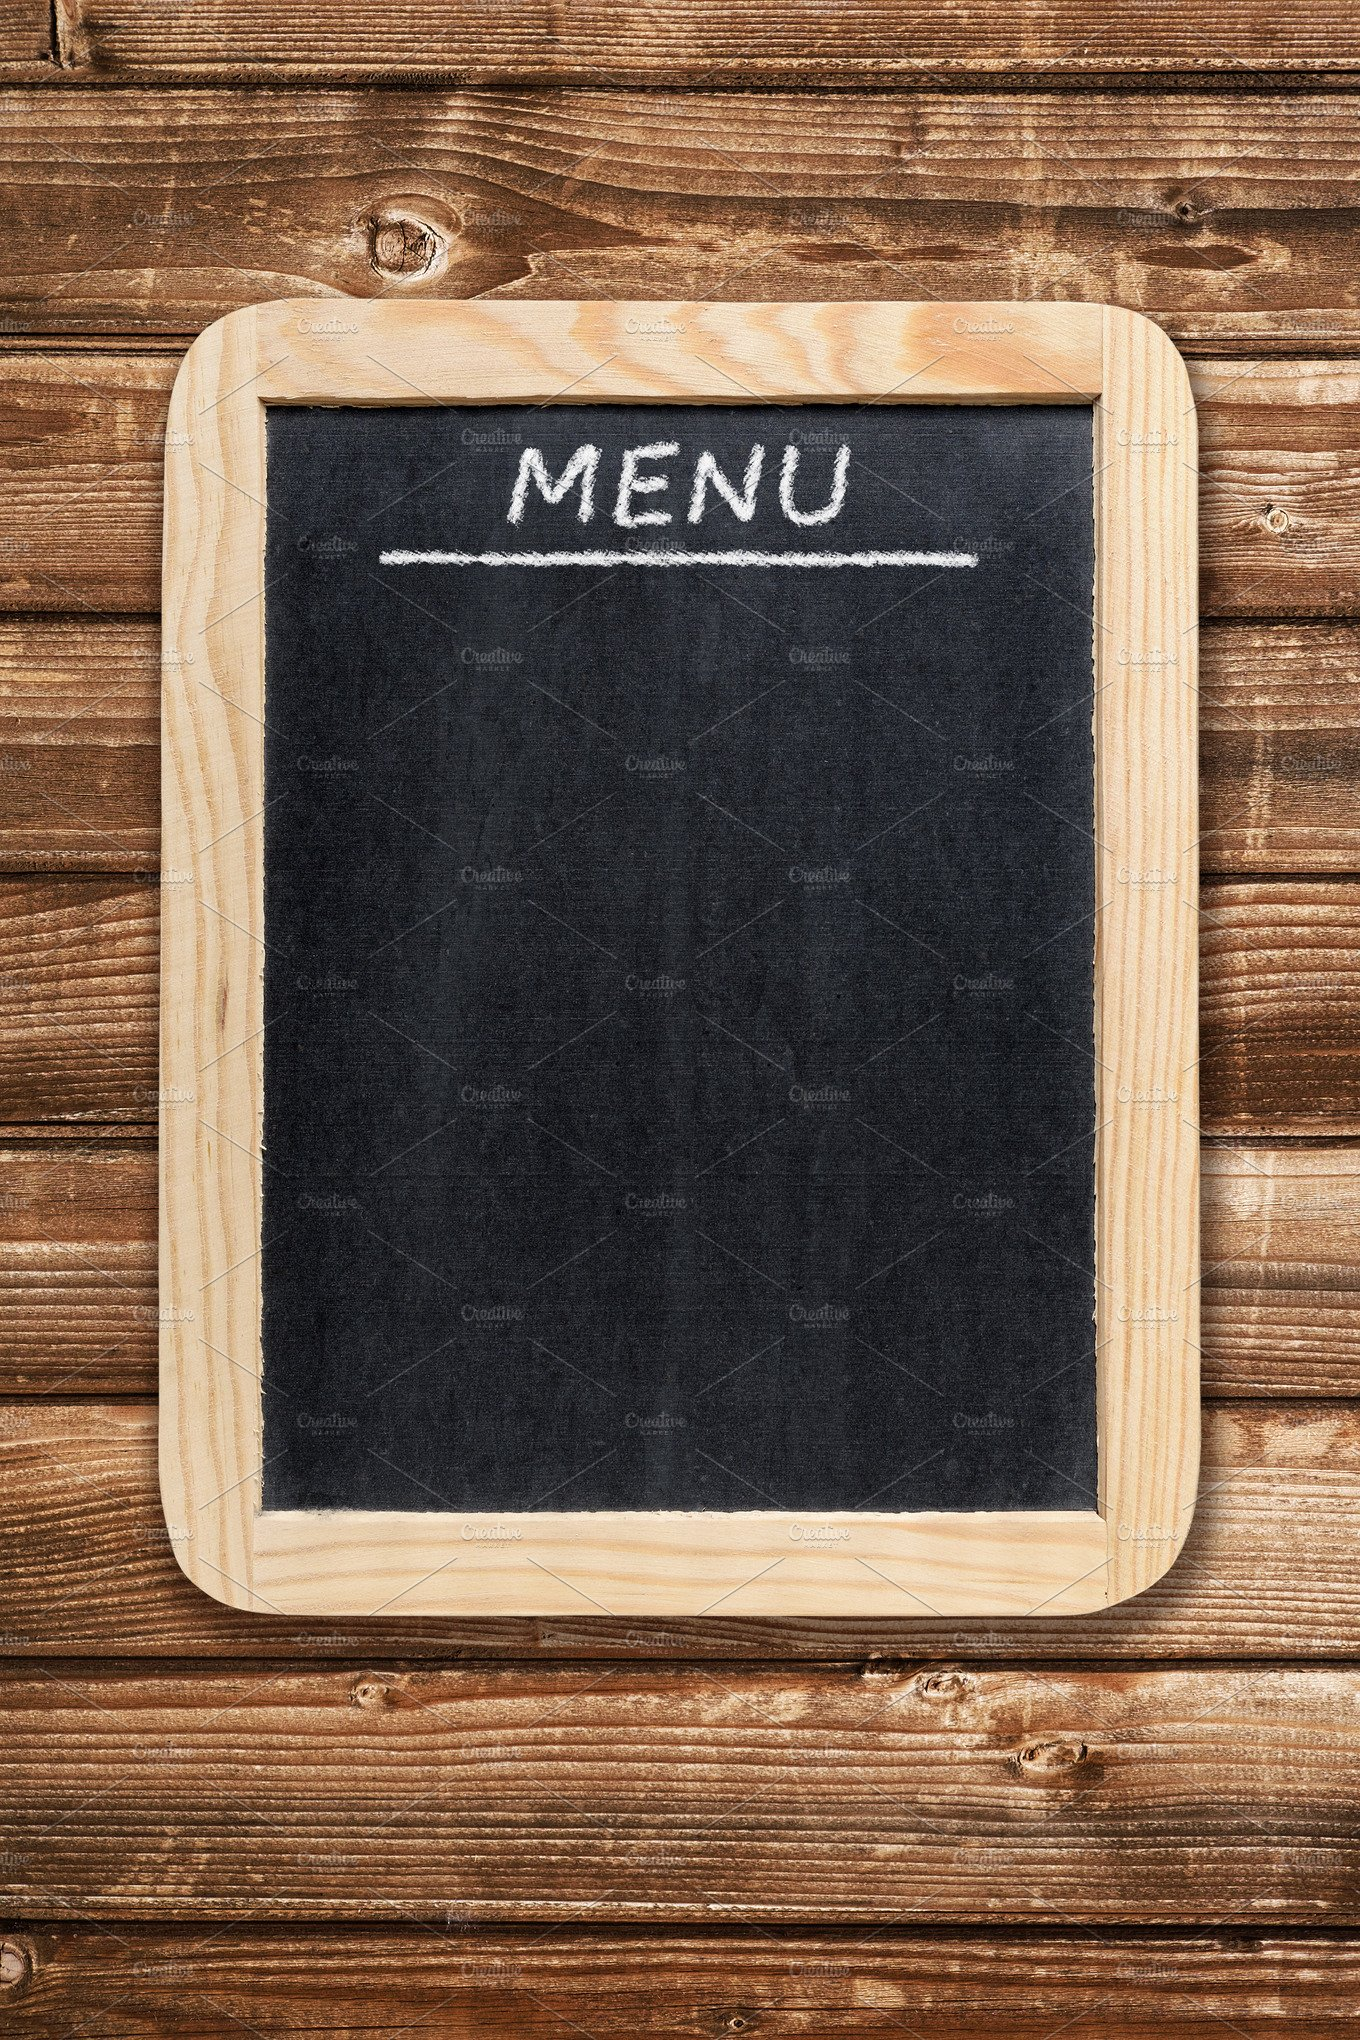 Menu board on wooden background ~ Food & Drink Photos ...